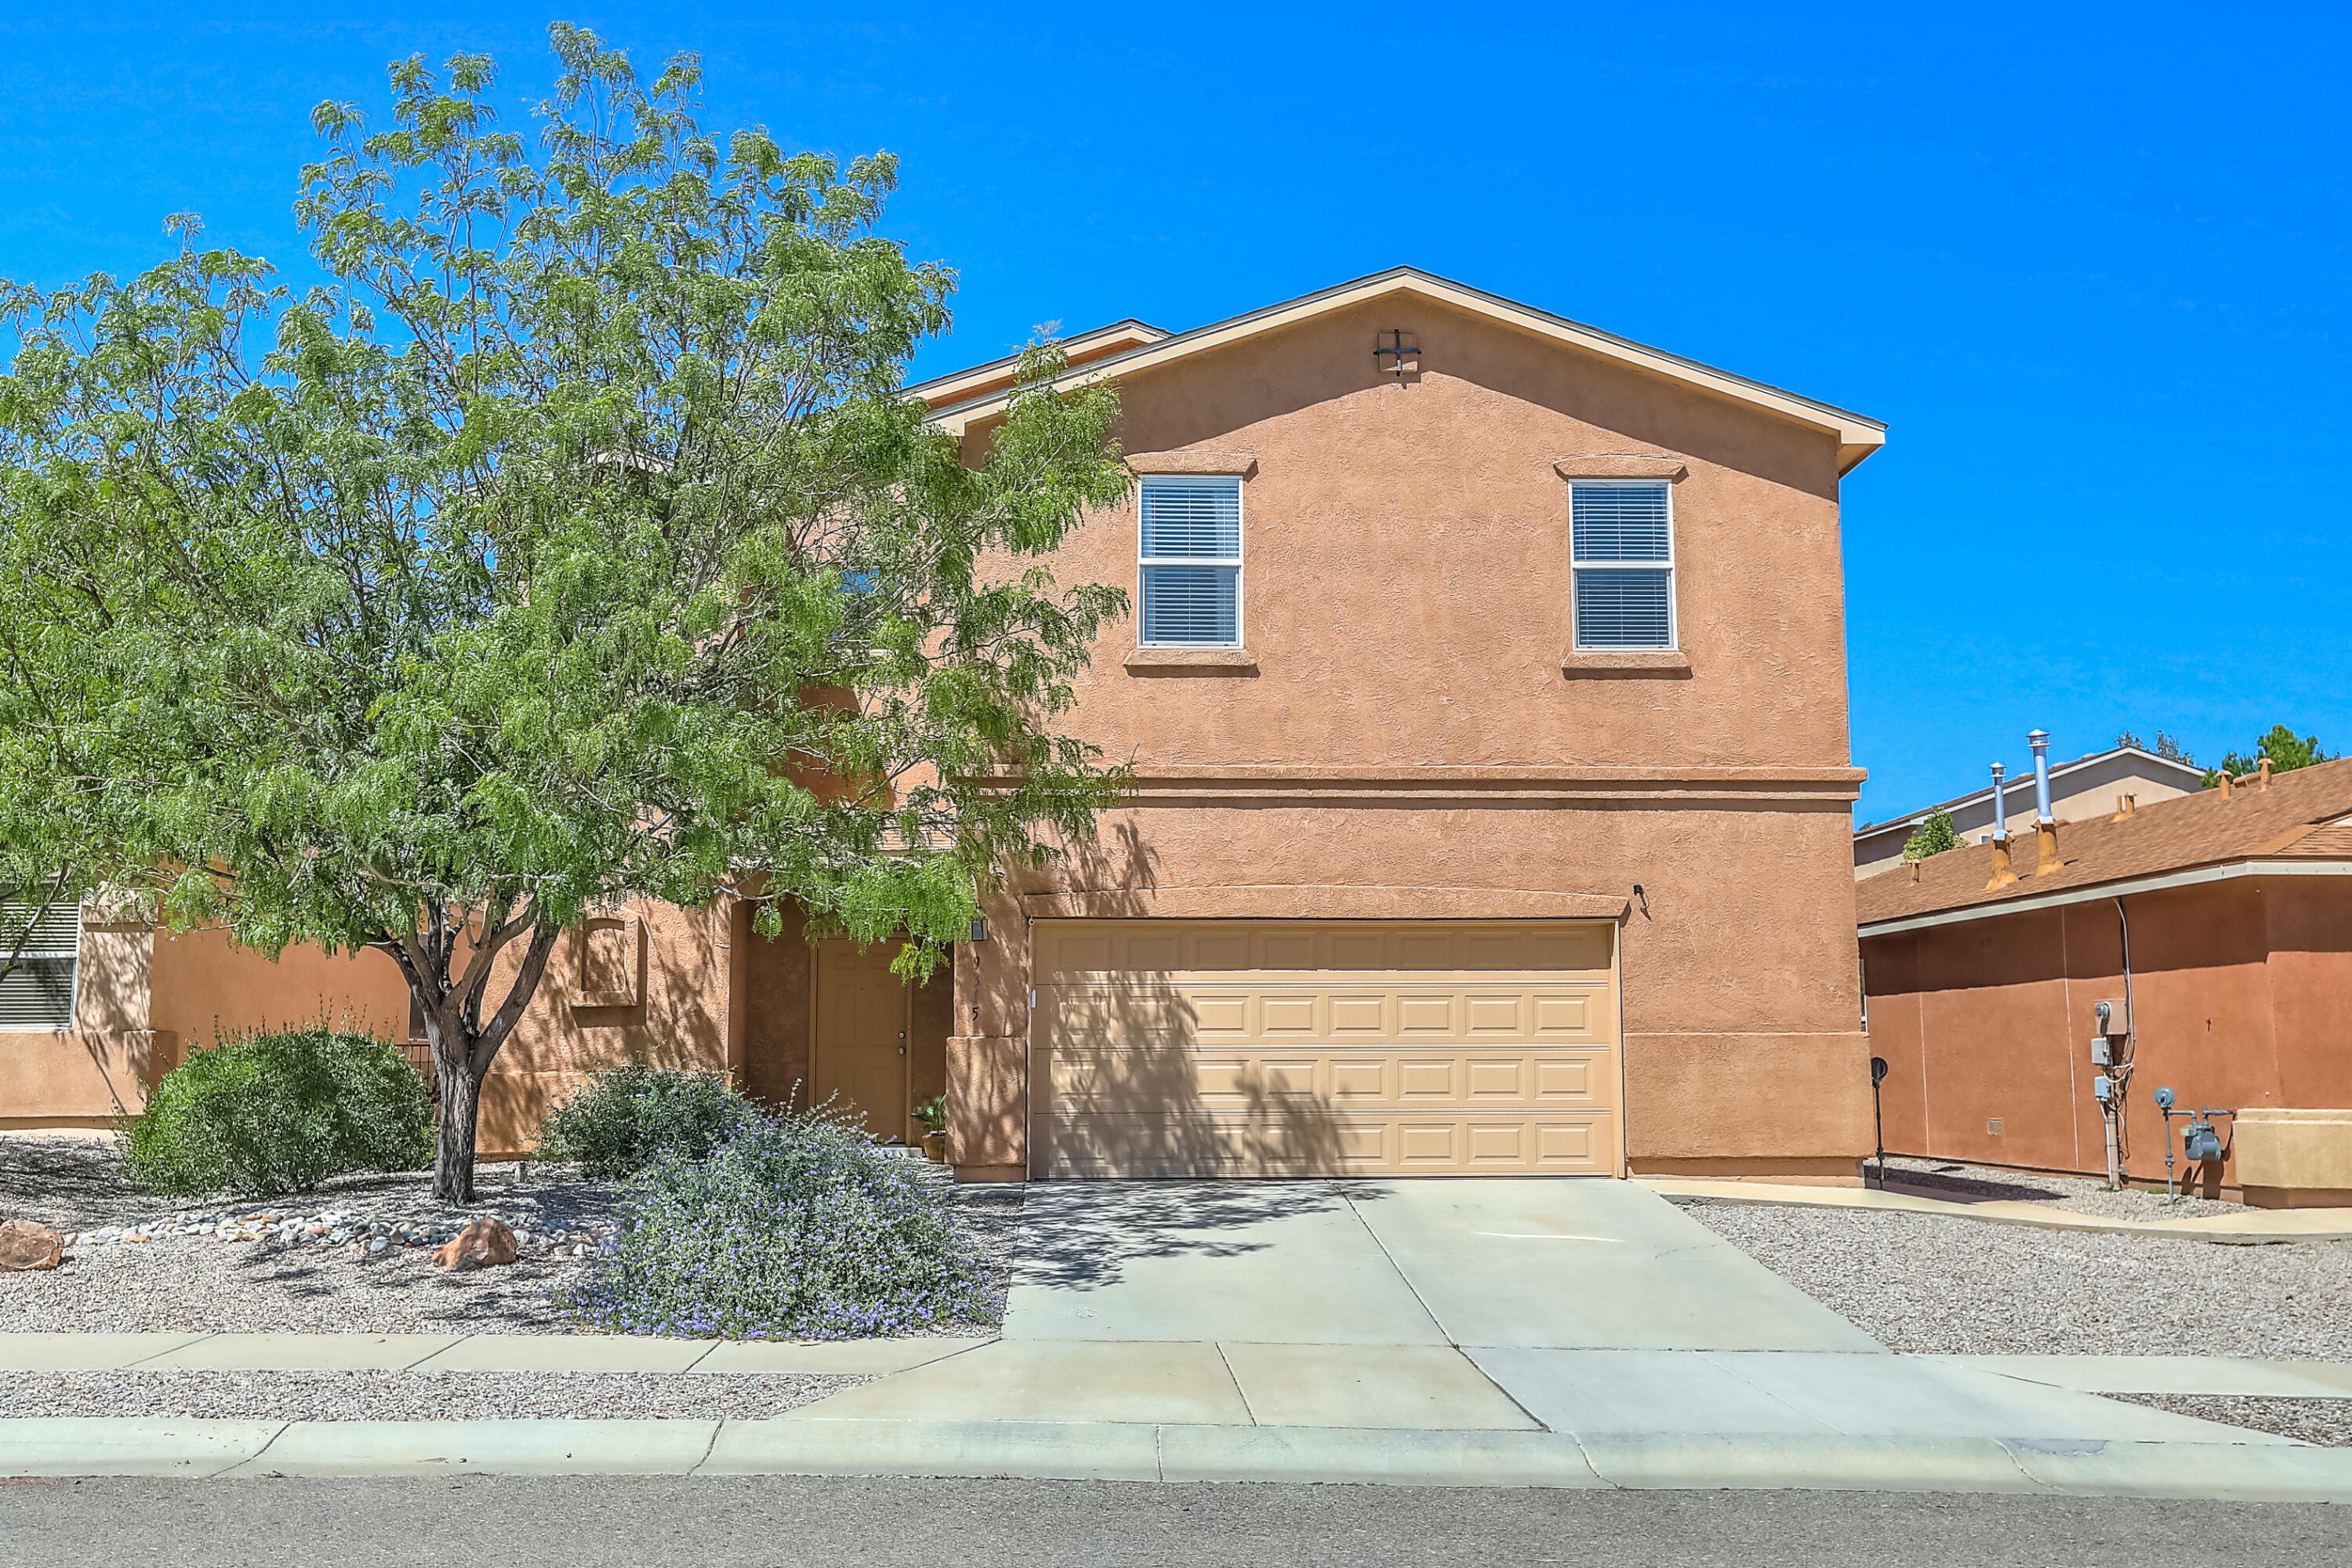 Fabulous House In Established Neighborhood! This Wonderful Open Concept Floor Plan Offers 4BR, An Office, 2 1/2 BA, 2CG,Utility Room,owned Tesla Solar Panels & More! The Living Room Is Open & Bright And Offers Plenty Of Room For Seating& Cozy Gas Fireplace.  Kitchen With lots of usable Granite Counters & Stainless Steel Appliances, Eat In Bar, & Dining Area. The Master Bedroom Is Generously Sized With Walk In Closet & Spacious Bathroom Completed With Separate Tub and Shower & Double Sinks. 3 Well Sized Bedrooms & Full Bath To Follow! Outside Is Ready For Summer W/Covered Patio, Walled Yard, And EZ Maintenance Landscaping, updated in January 2021 with turf. This Home Has So Much To Offer! Close To Schools, Shopping & Restaurants!